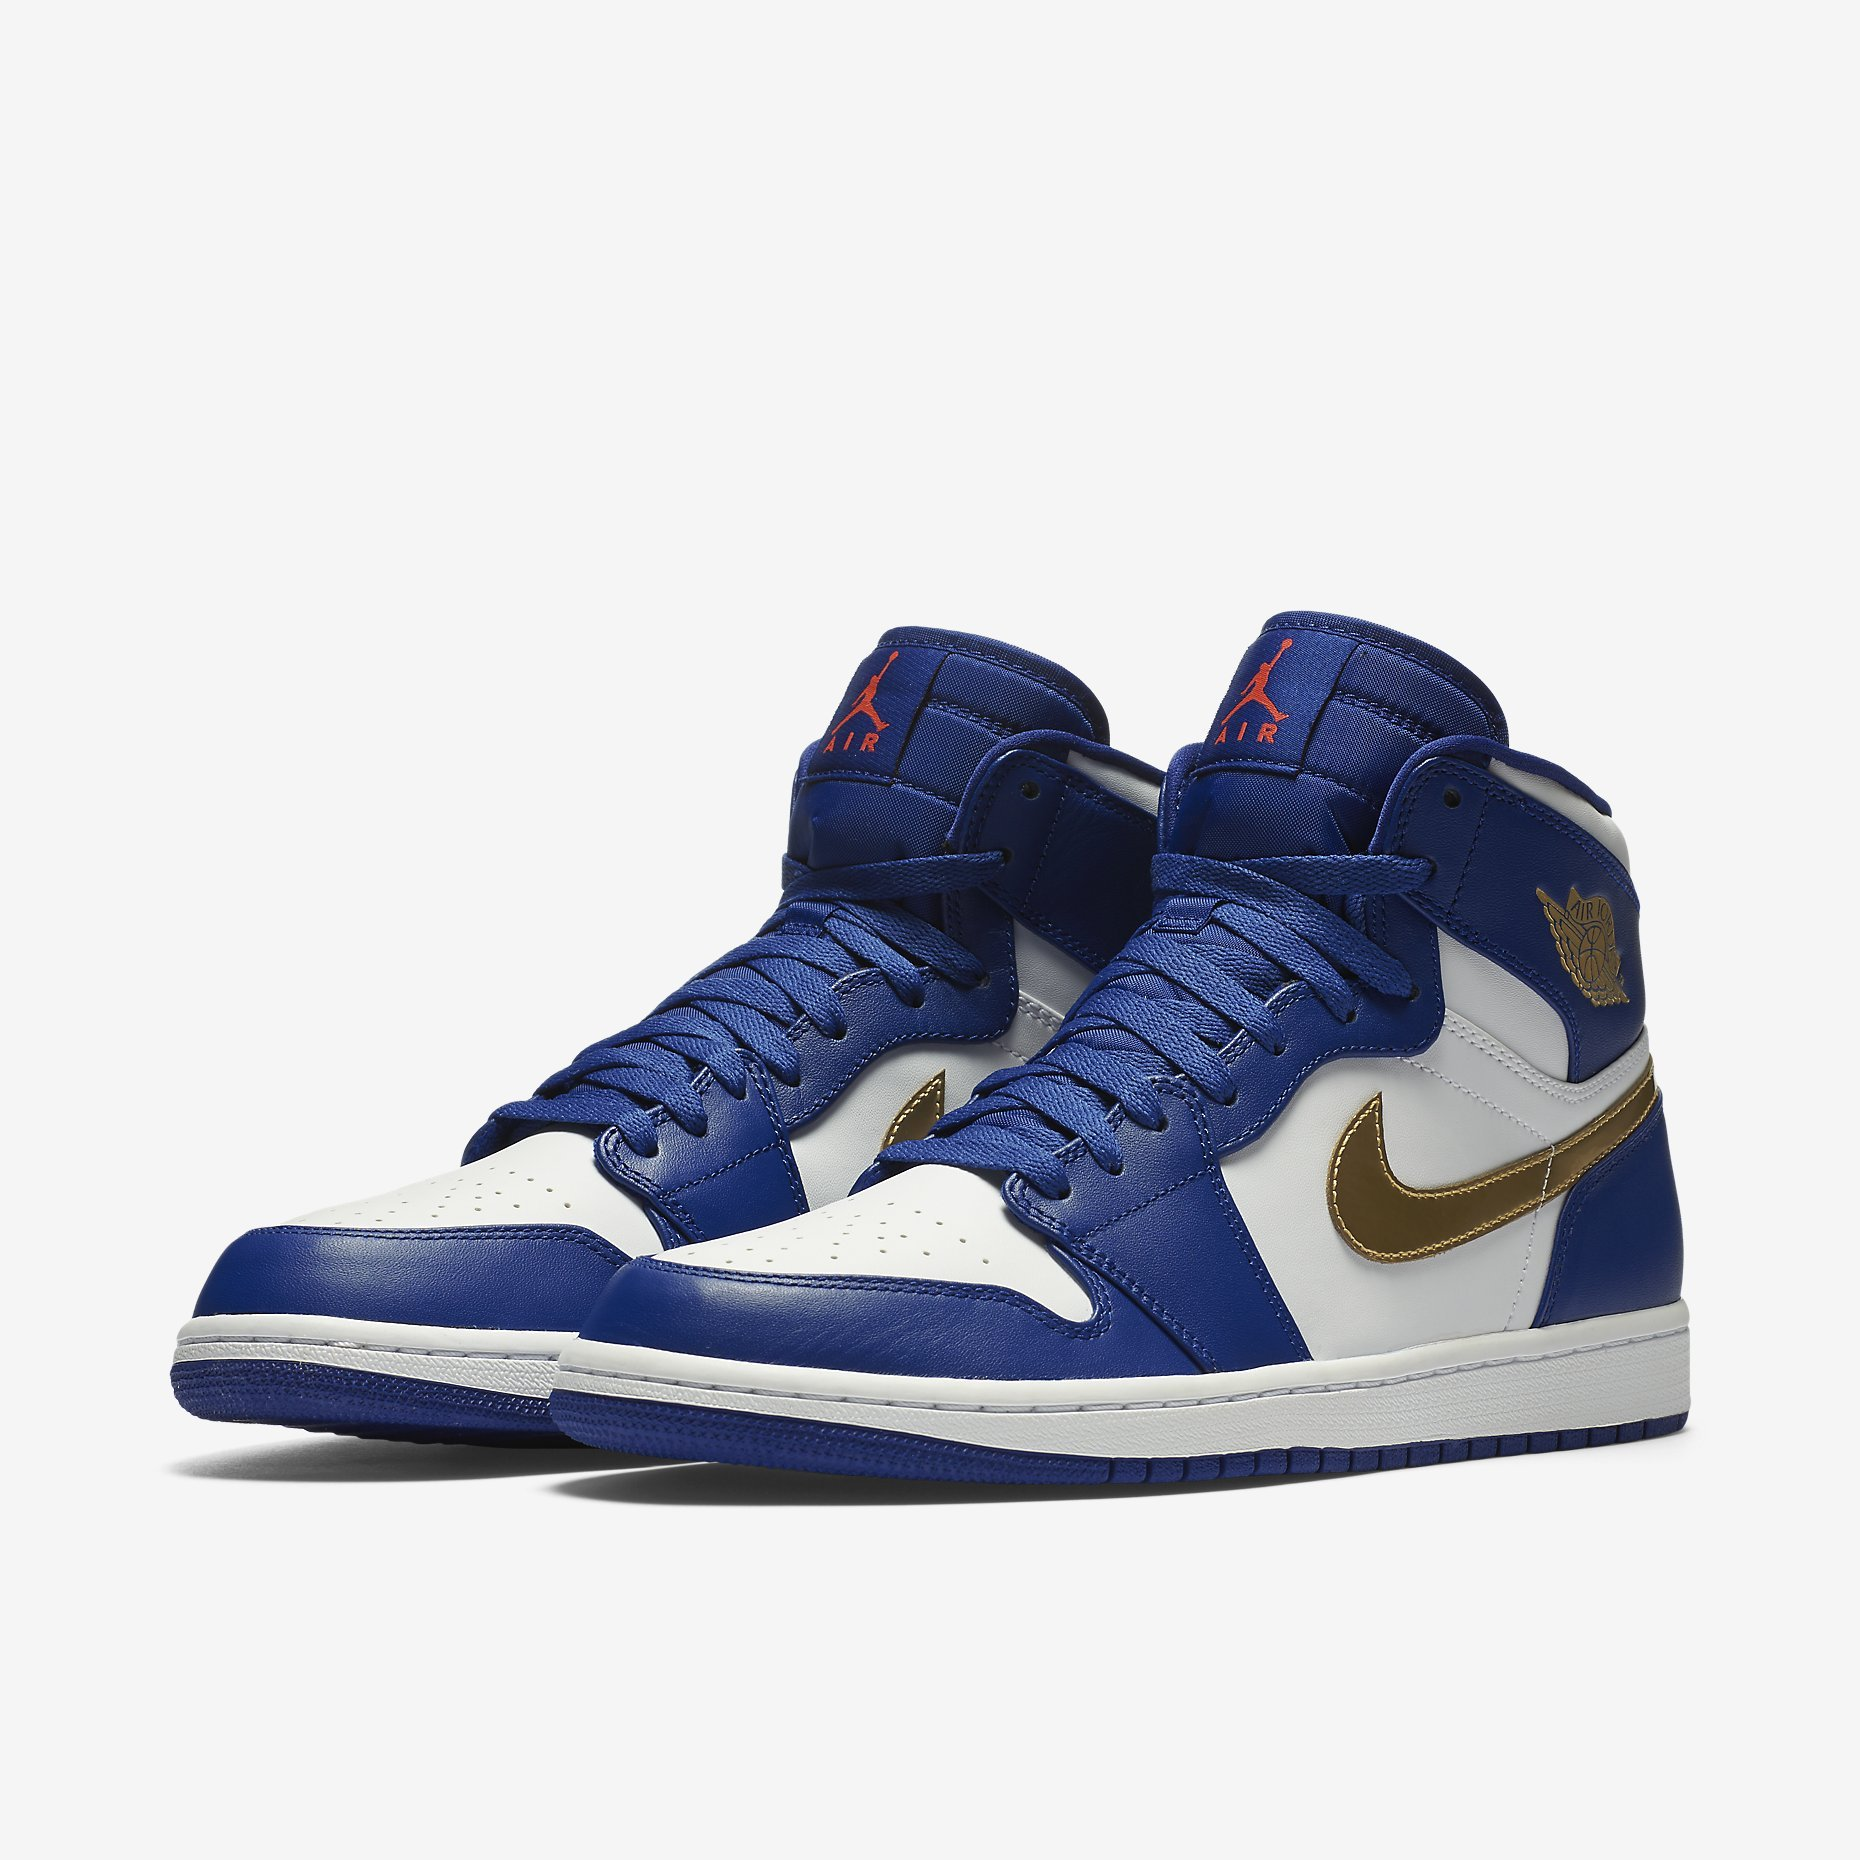 nike-air-jordan-1-retro-high-olympic-medal-332550-406-602-release-20160801